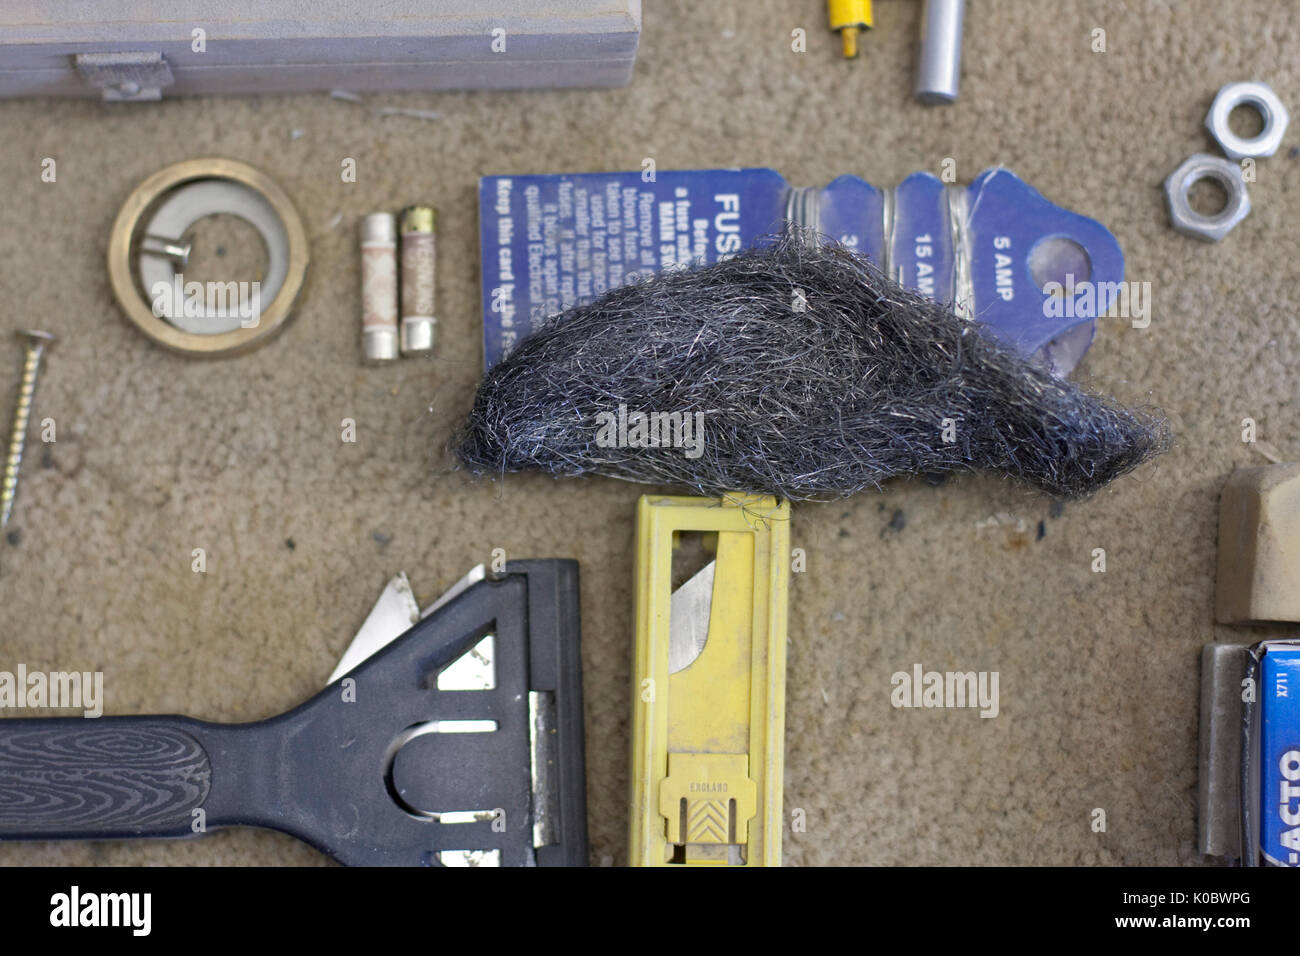 Assorted tools on a workbench - Stock Image